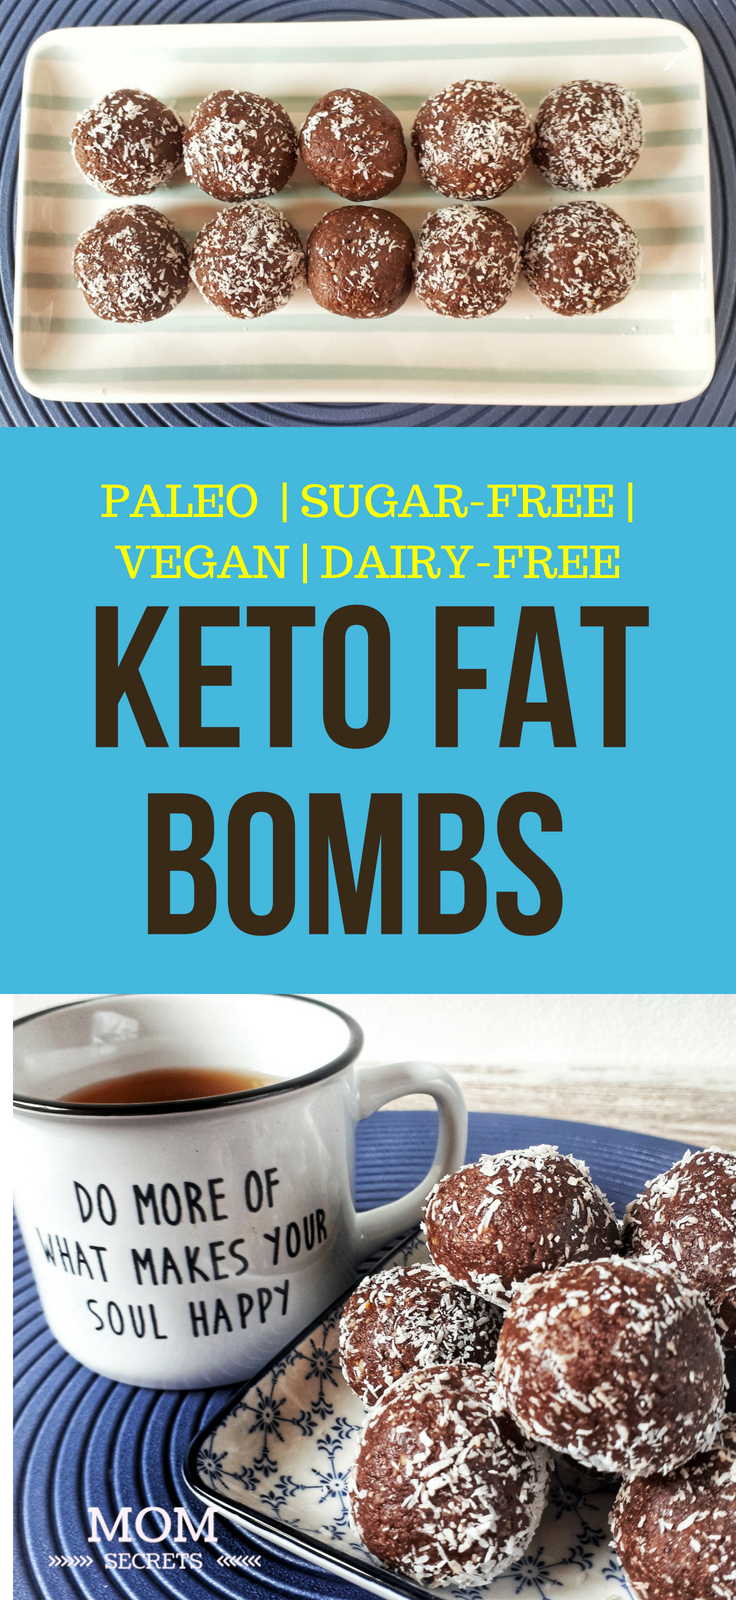 These delicious little no-bake keto fat bombs are the perfect healthy snack! They are low-carb, grain-free, dairy-free, vegan and paleo. Simply irresistible!